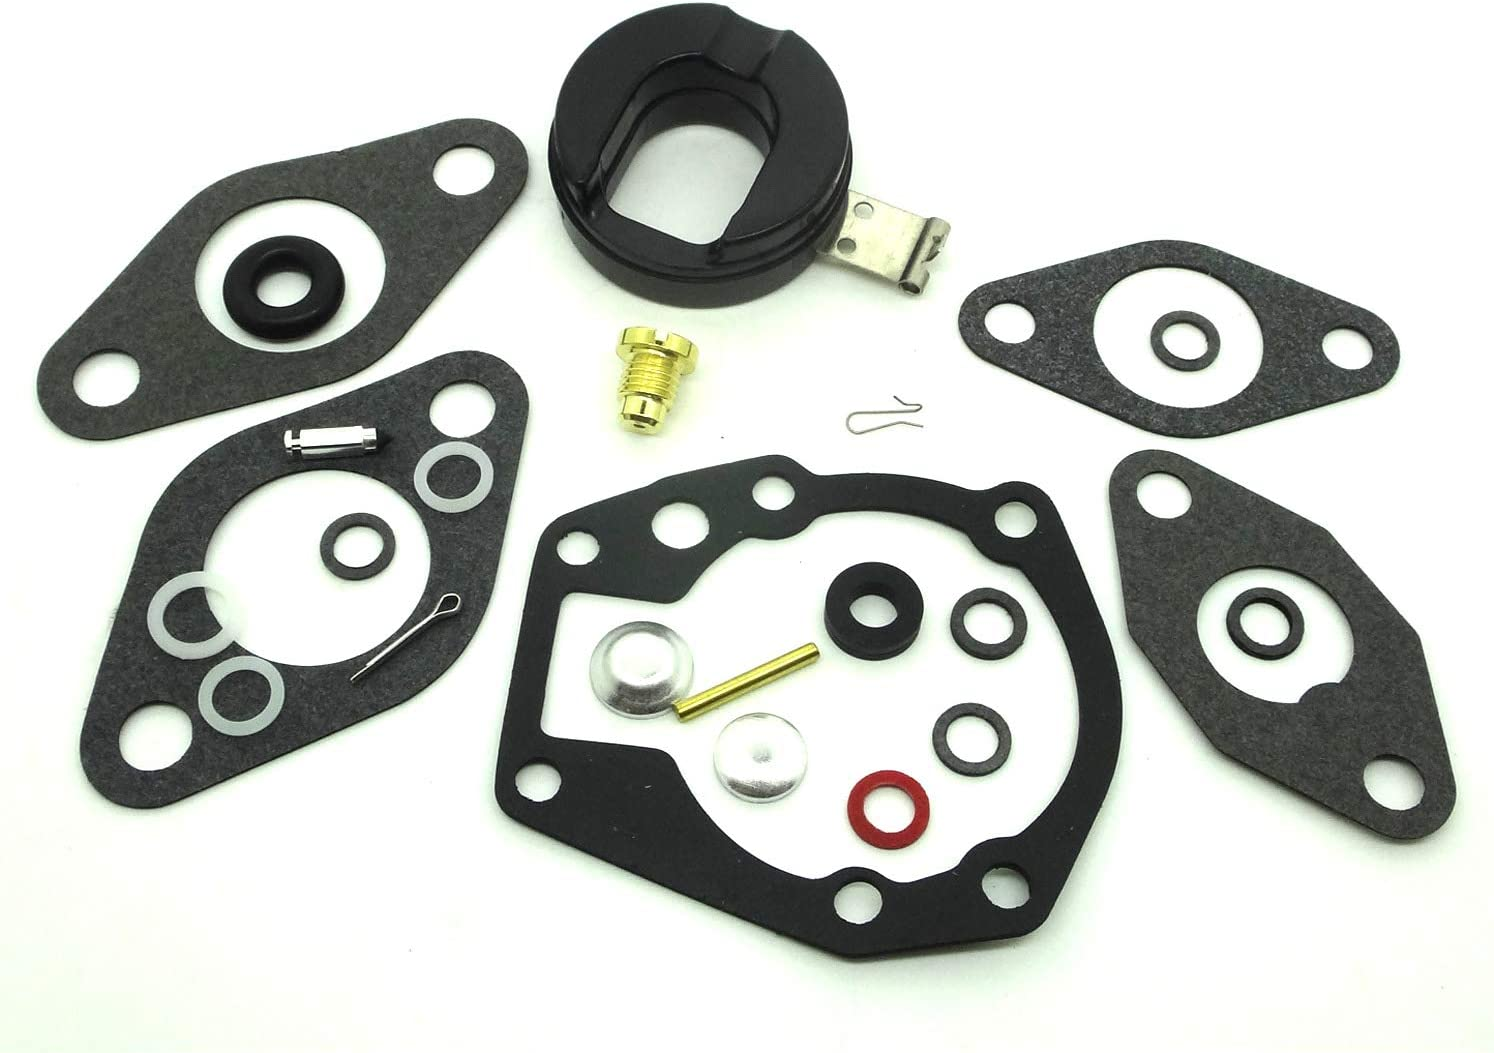 ConPus Carburetor Carb Repair Rebuild Kit with Float for Johnson/Evinrude 1.5 2 3 5 5.5 6 7.5 10 15 18 20 HP 439071 0439071 18-7043 383052 398532